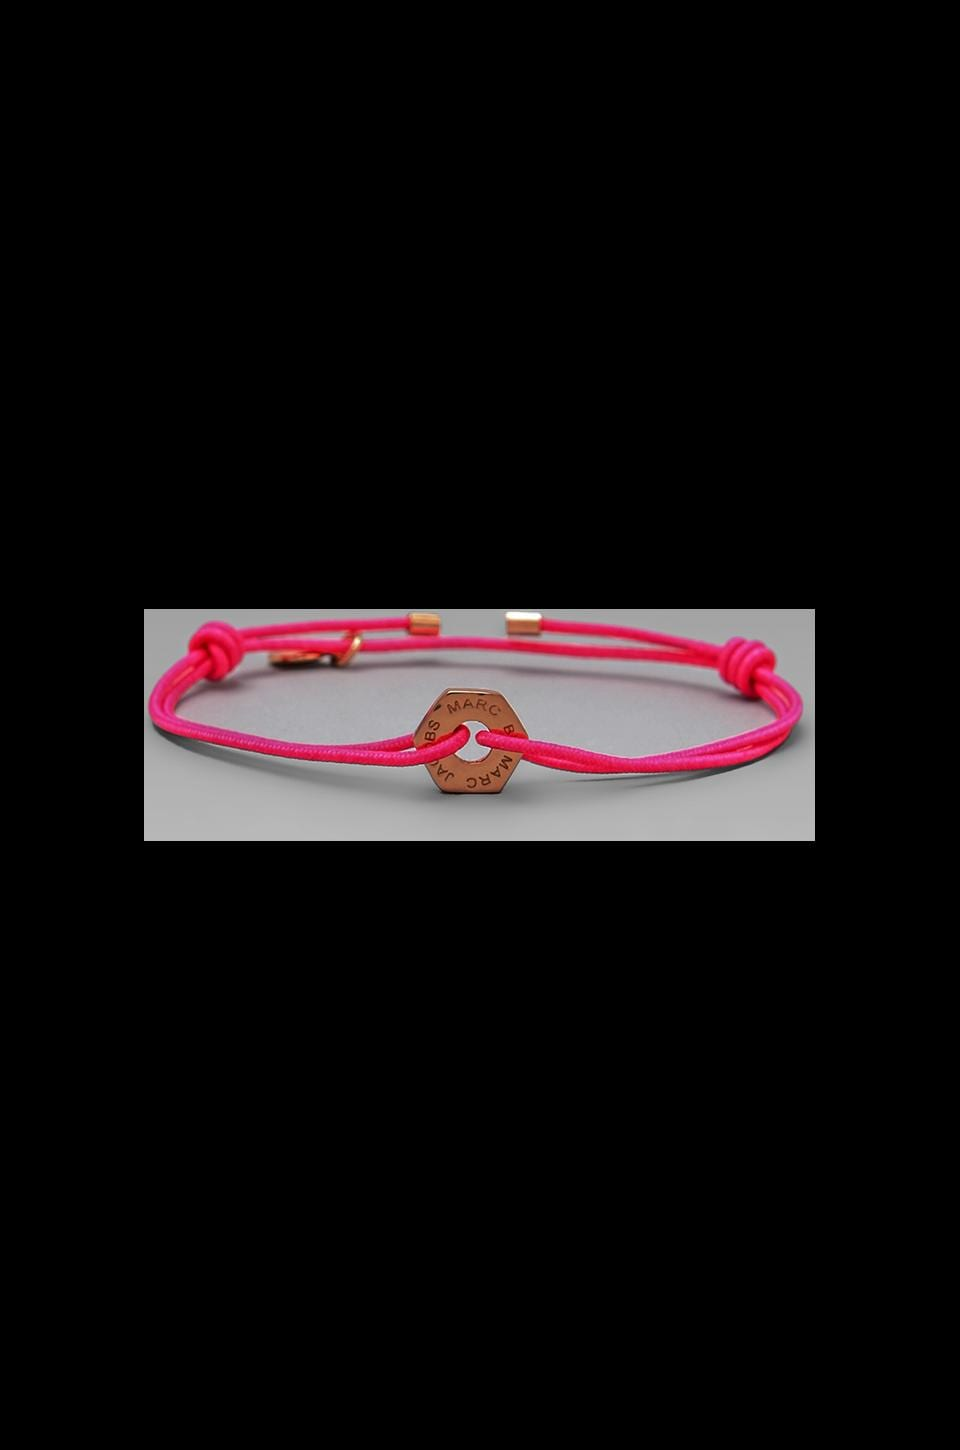 Marc by Marc Jacobs Bolt Friendship Bracelet in Knockout Pink